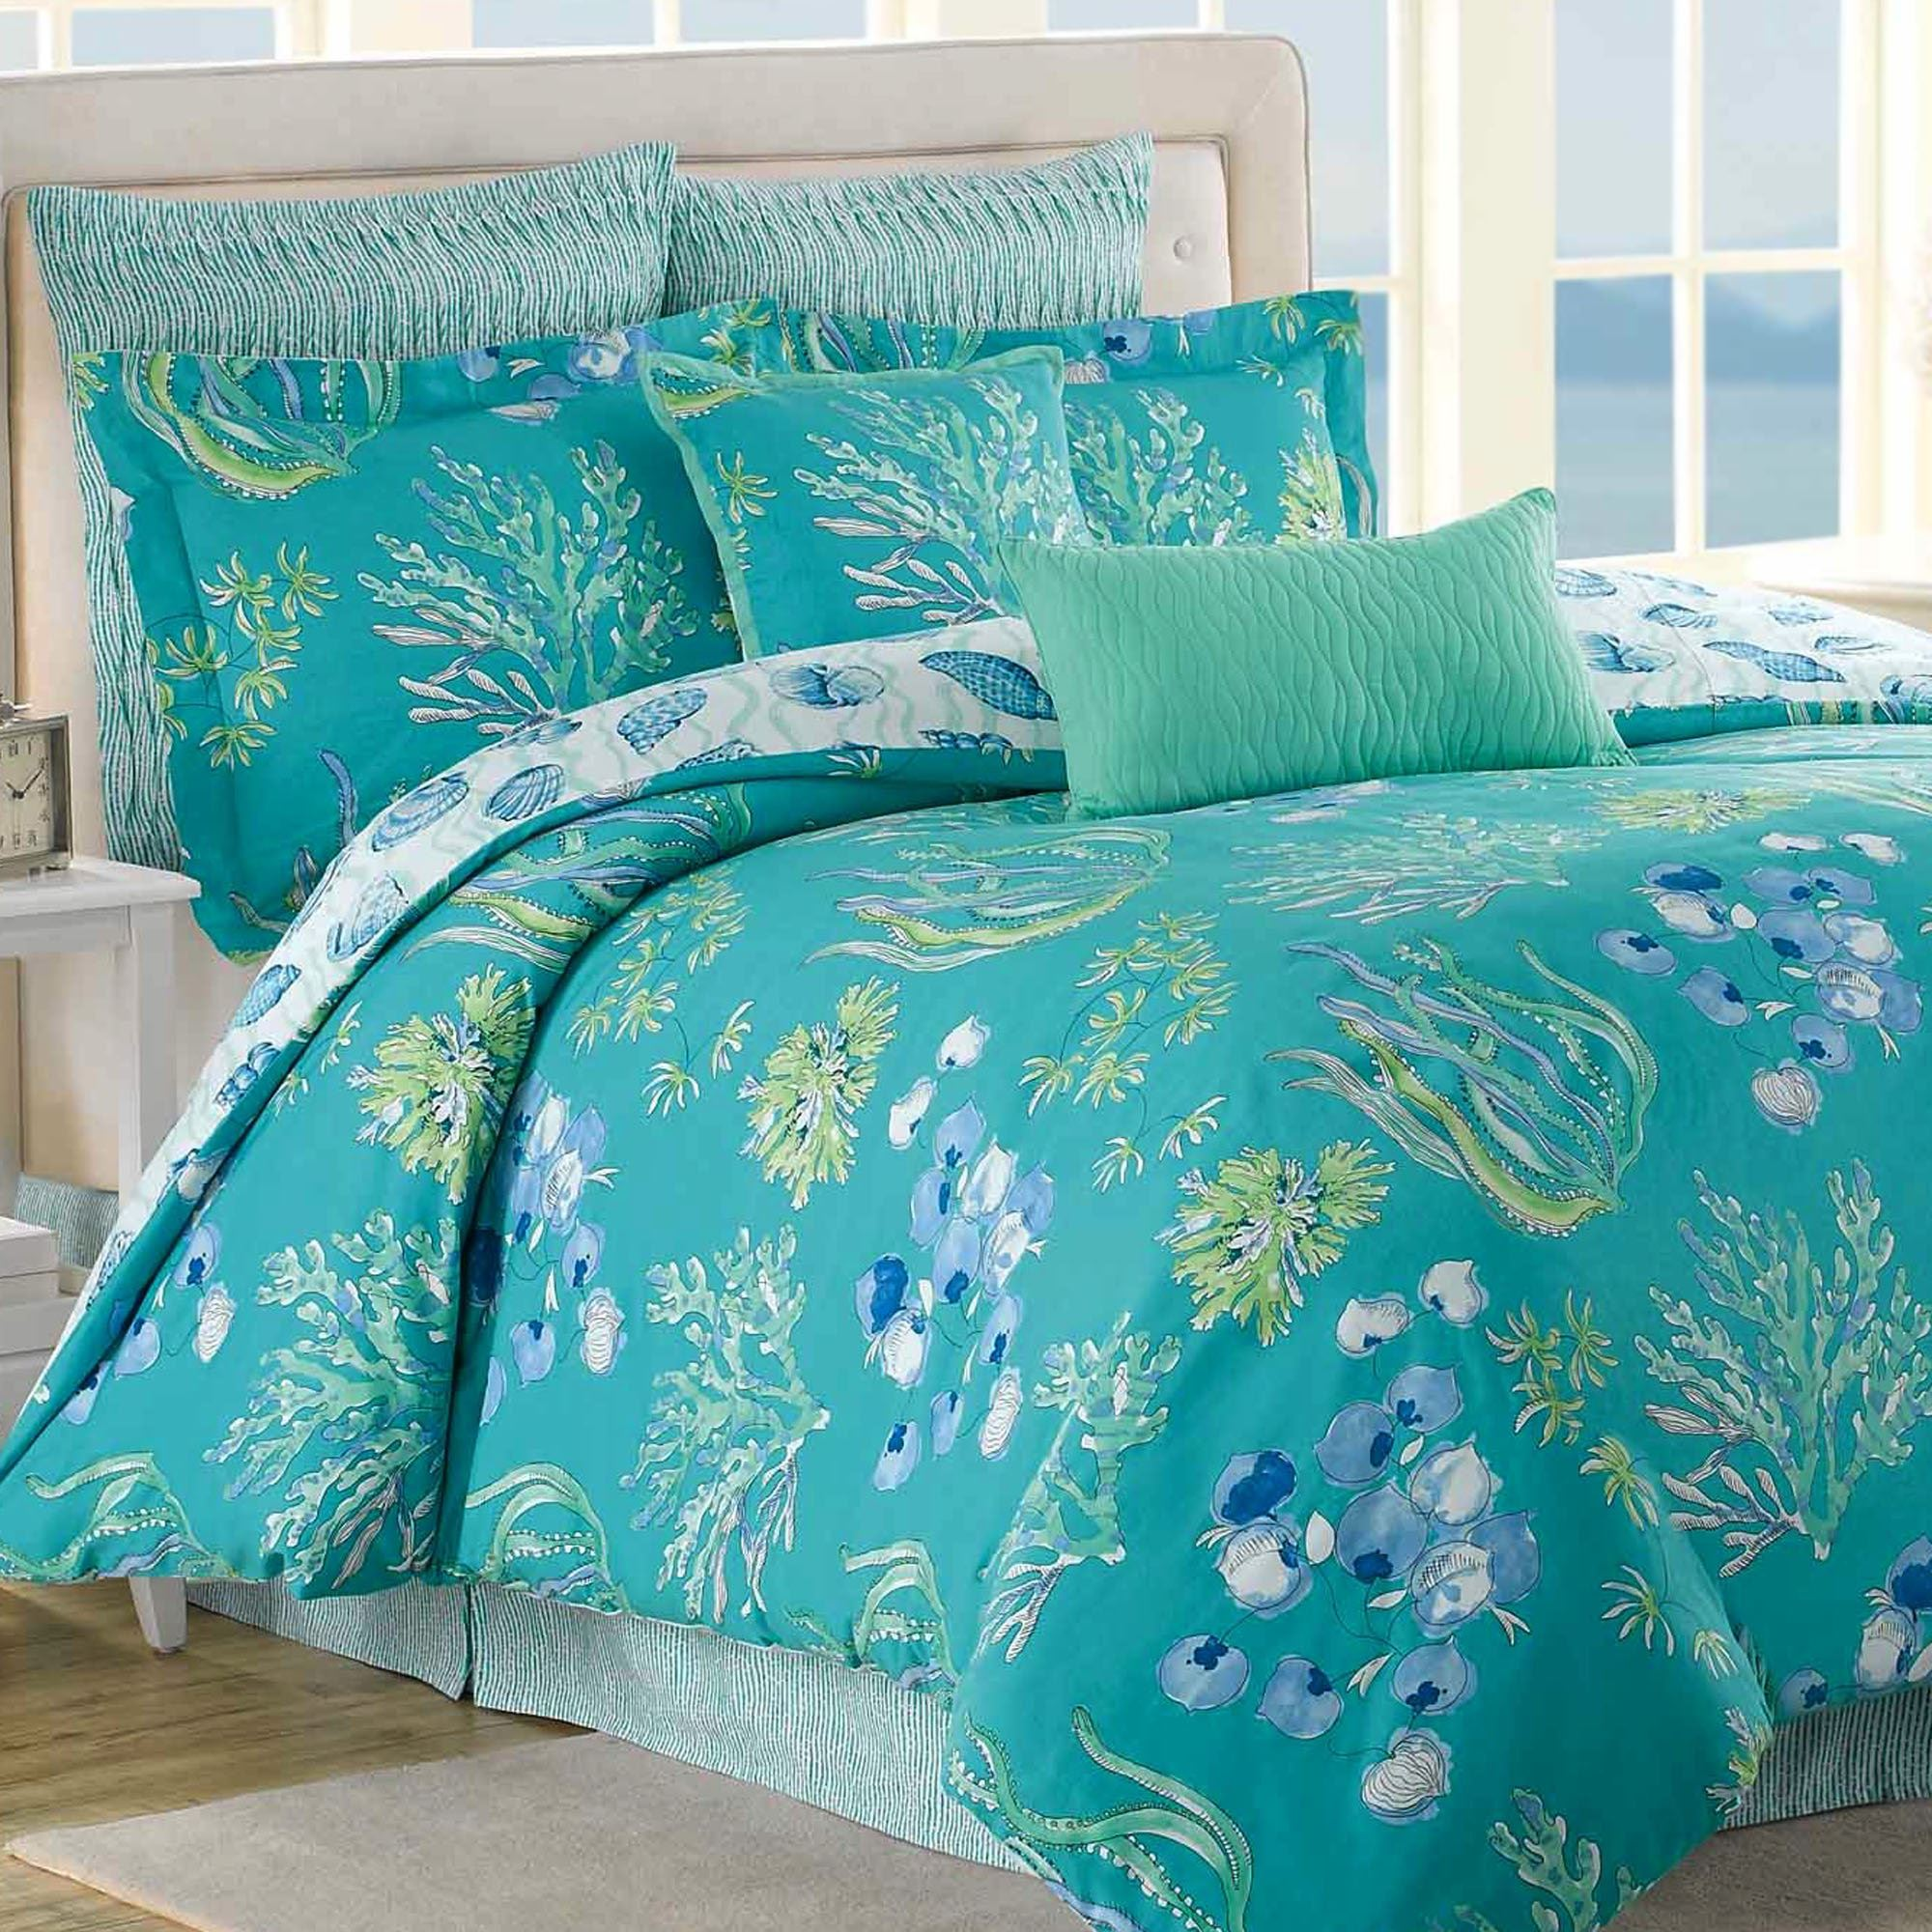 Beachcomber turquoise ocean 8 pc comforter bed set - Bedroom sheets and comforter sets ...